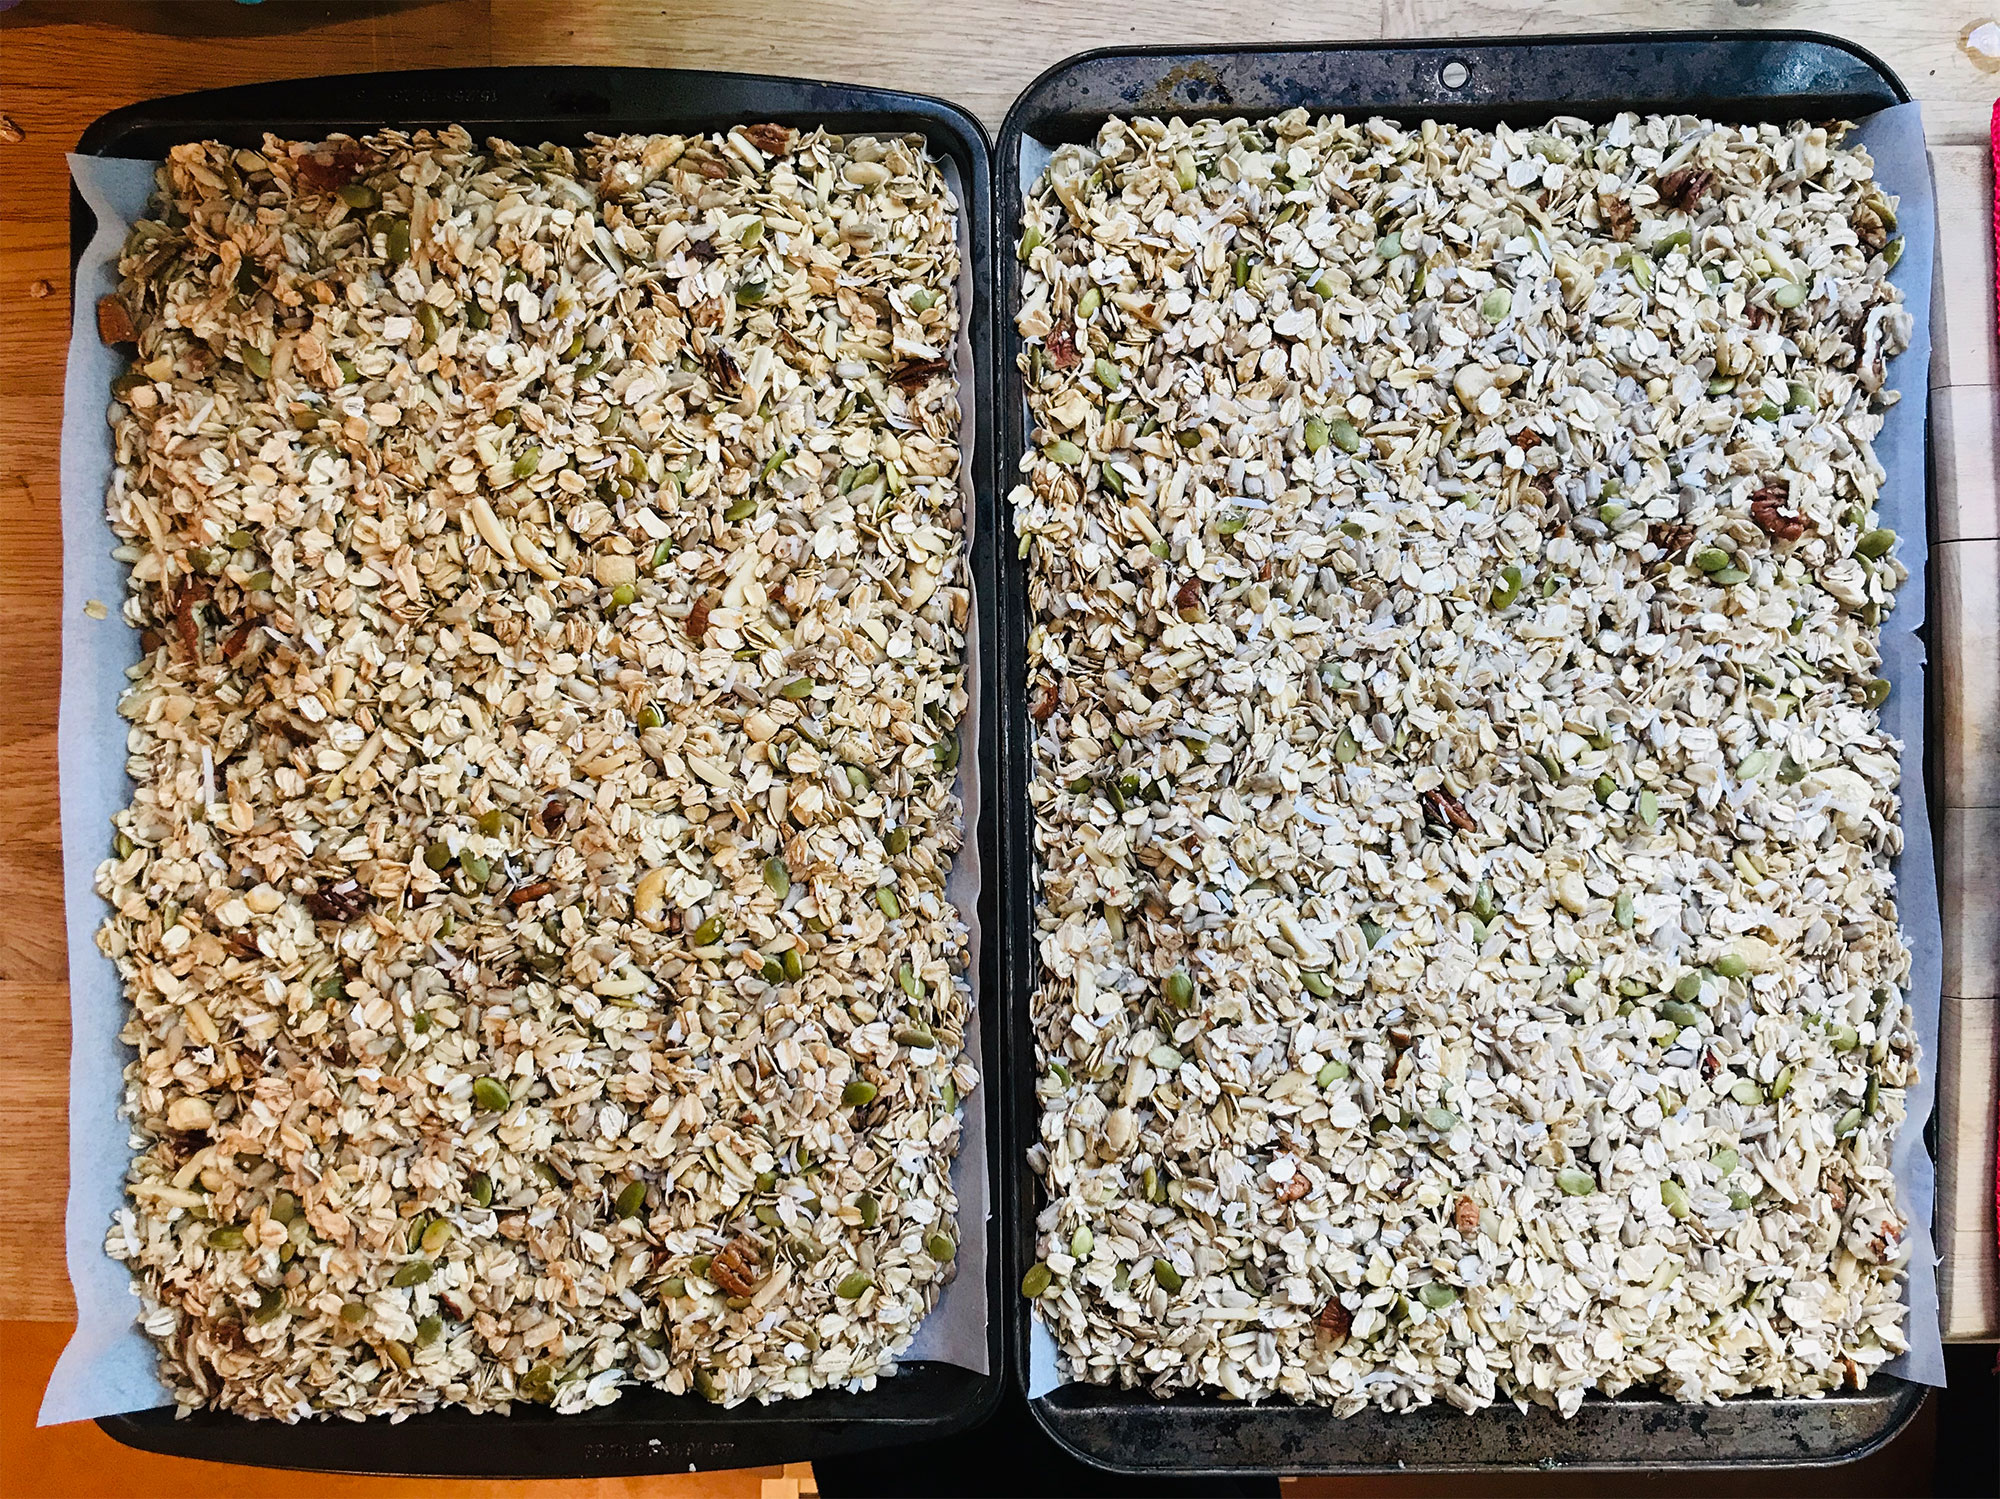 Granola spread on sheet pans ready for the oven